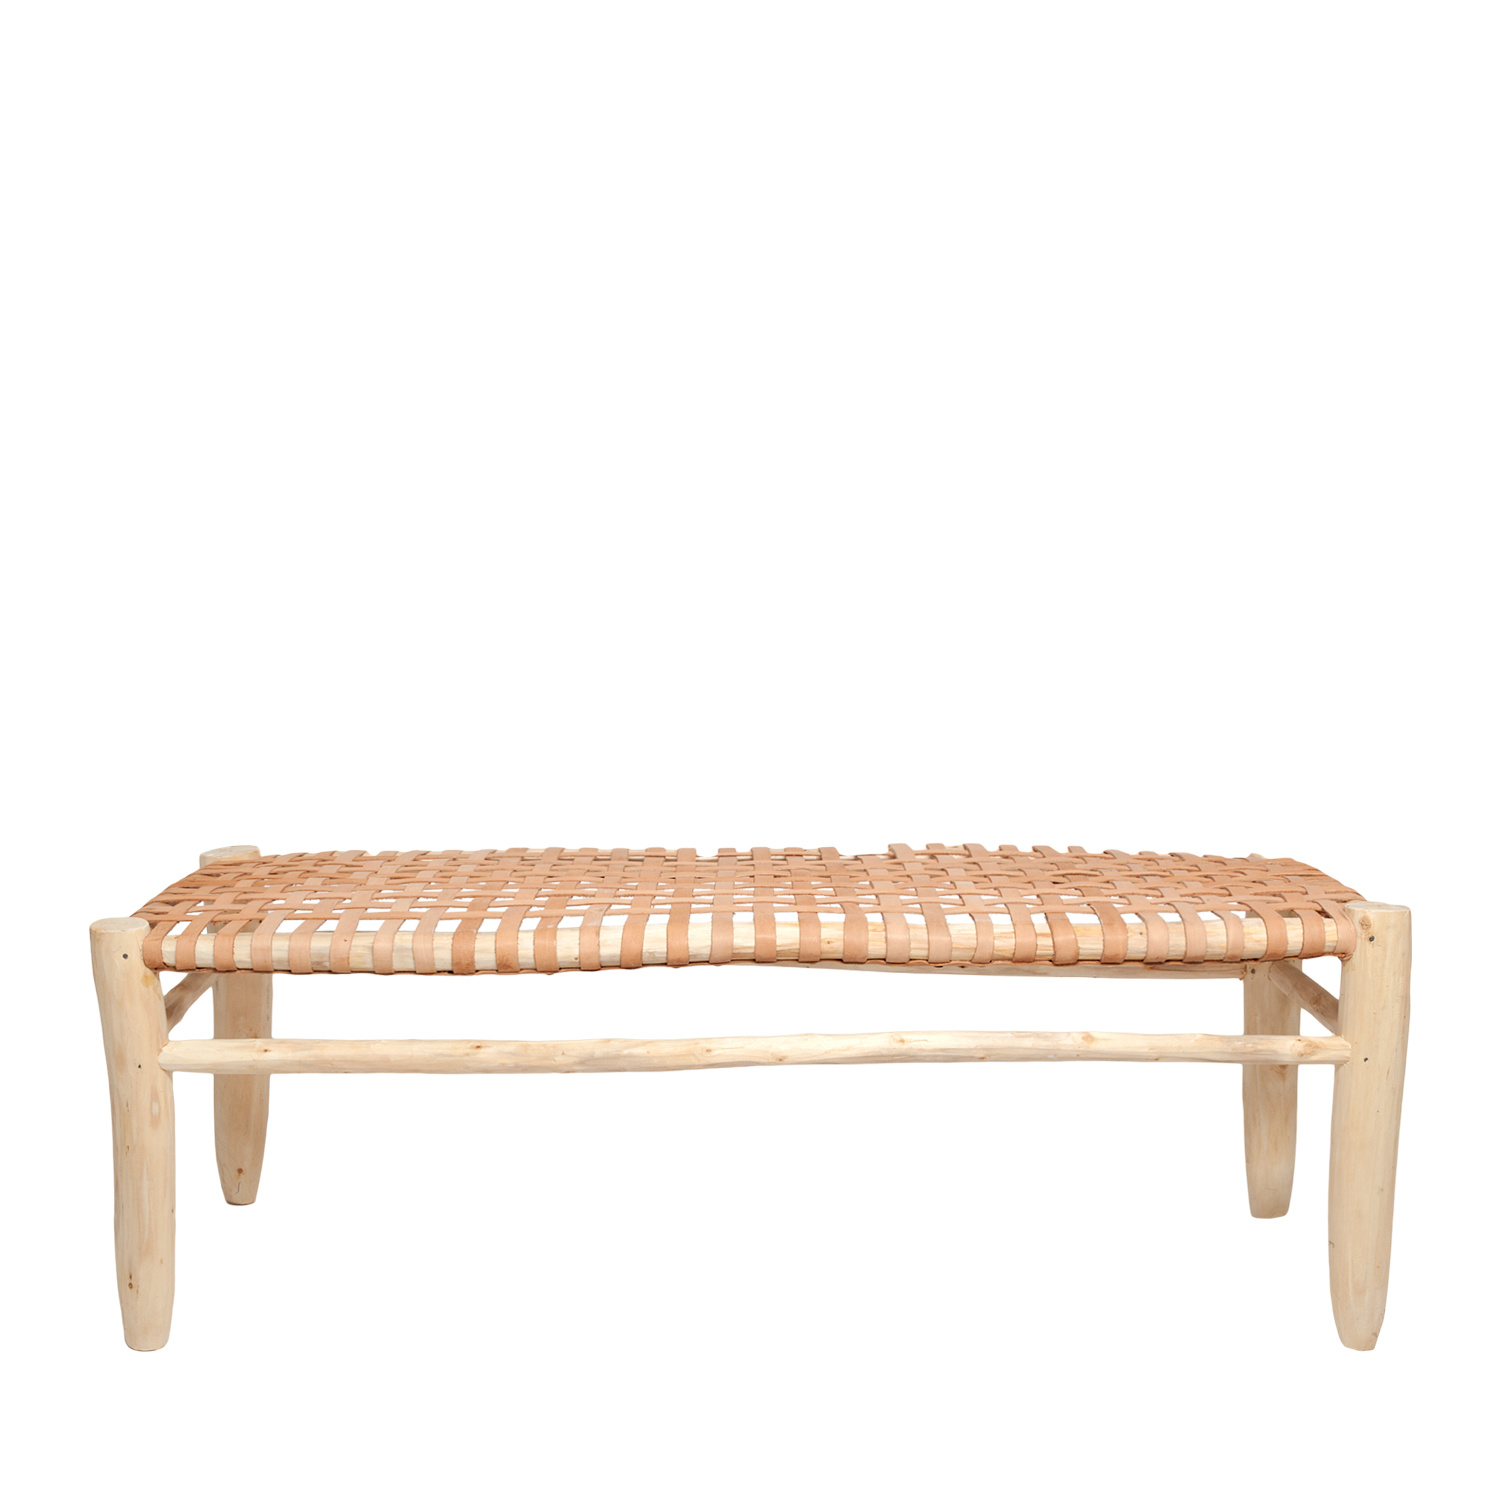 Moroccan Bench W Leather Seating 110x40cm Household Hardware Petite Lily Interiors